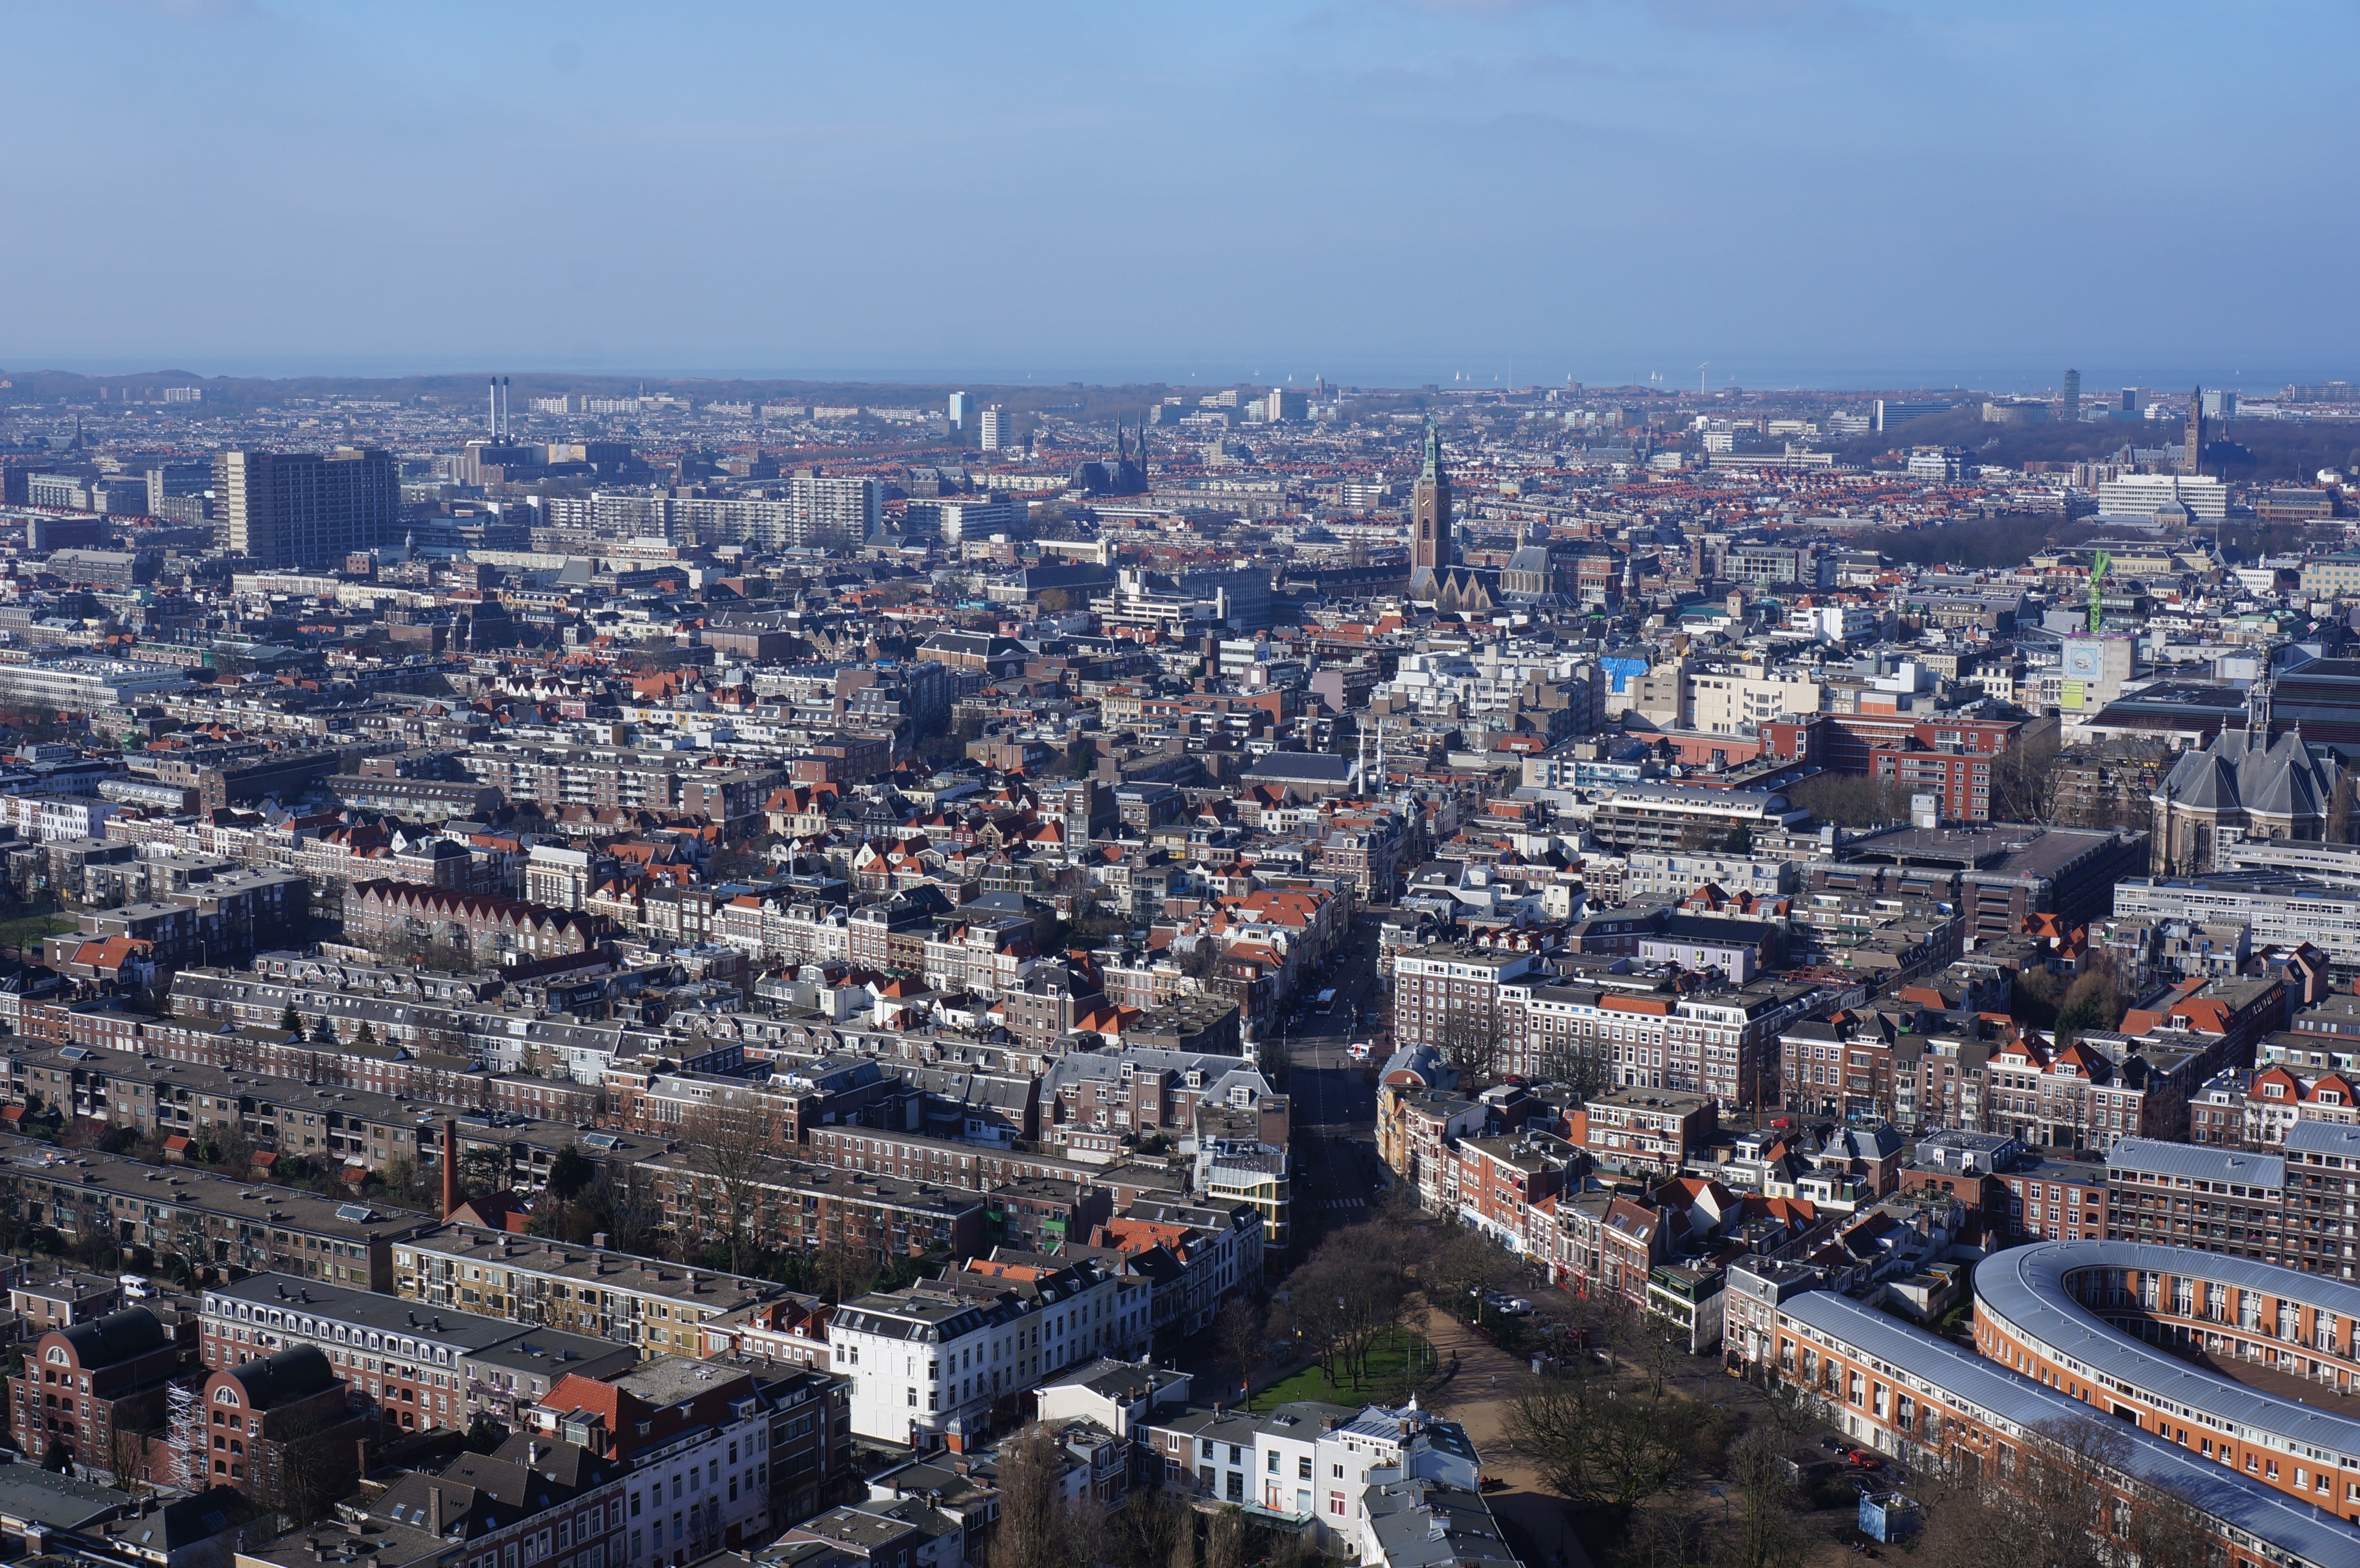 Things to do and see in The Hague